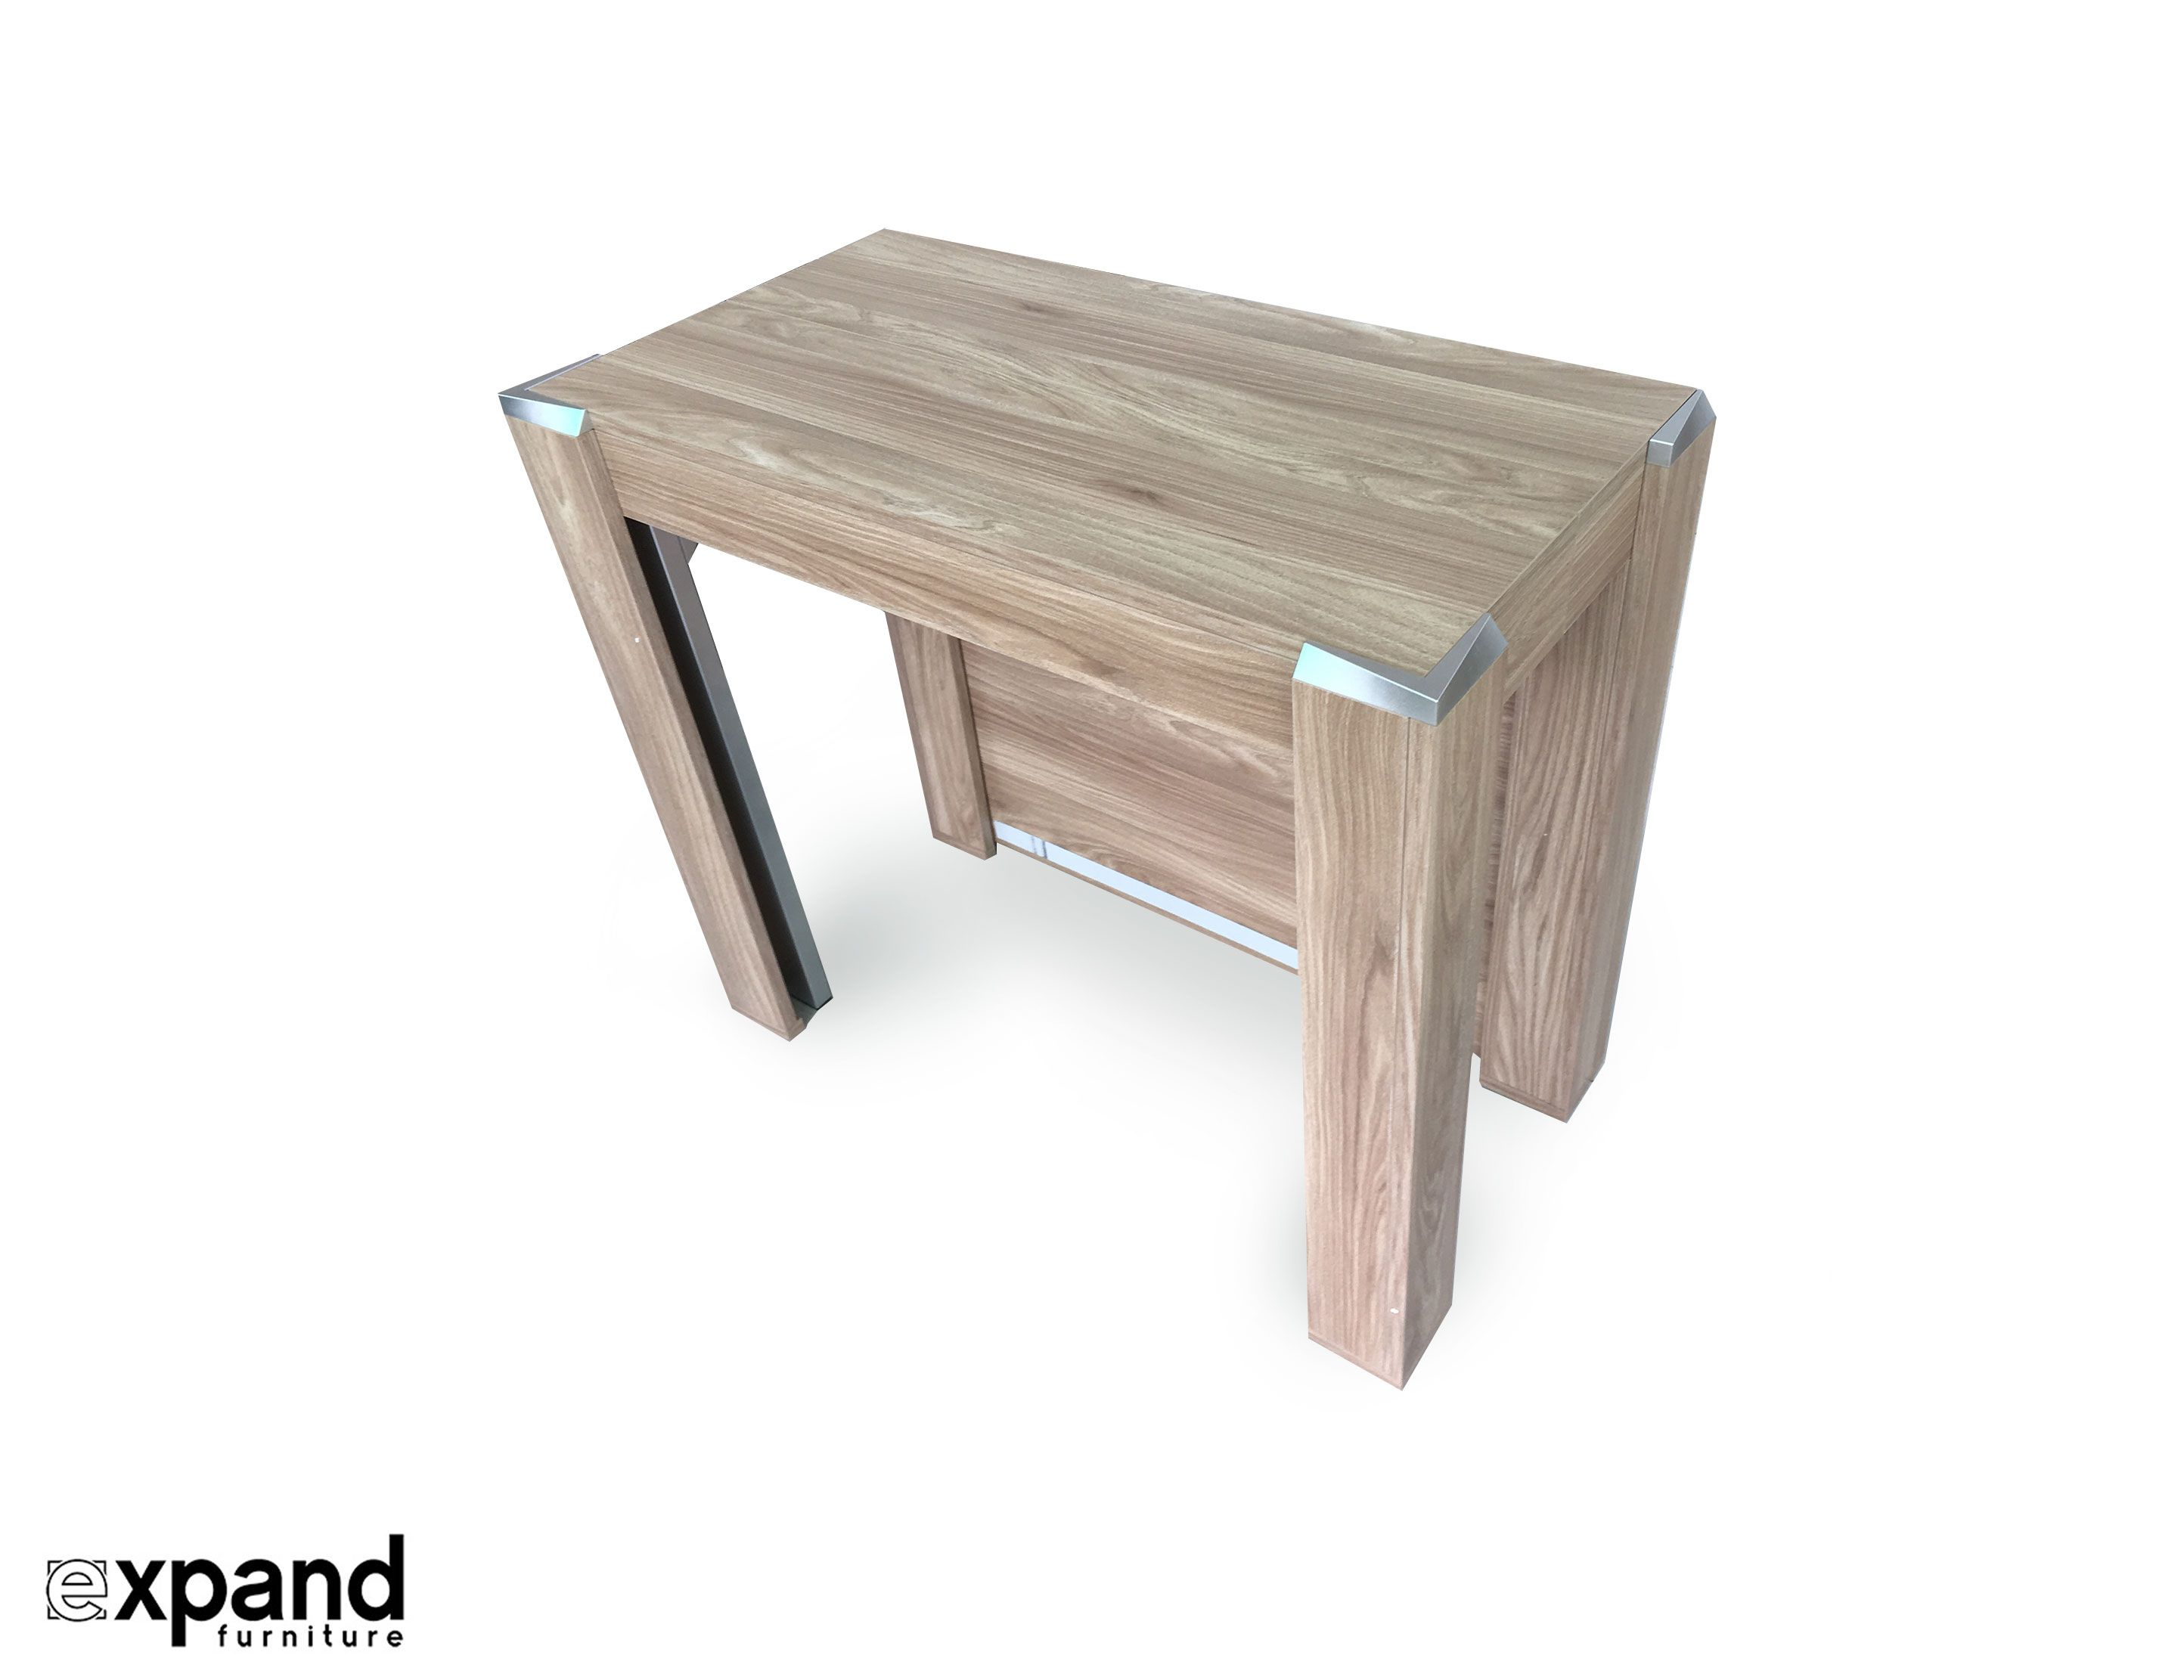 Expanda Console With Contained Extensions Expand Furniture